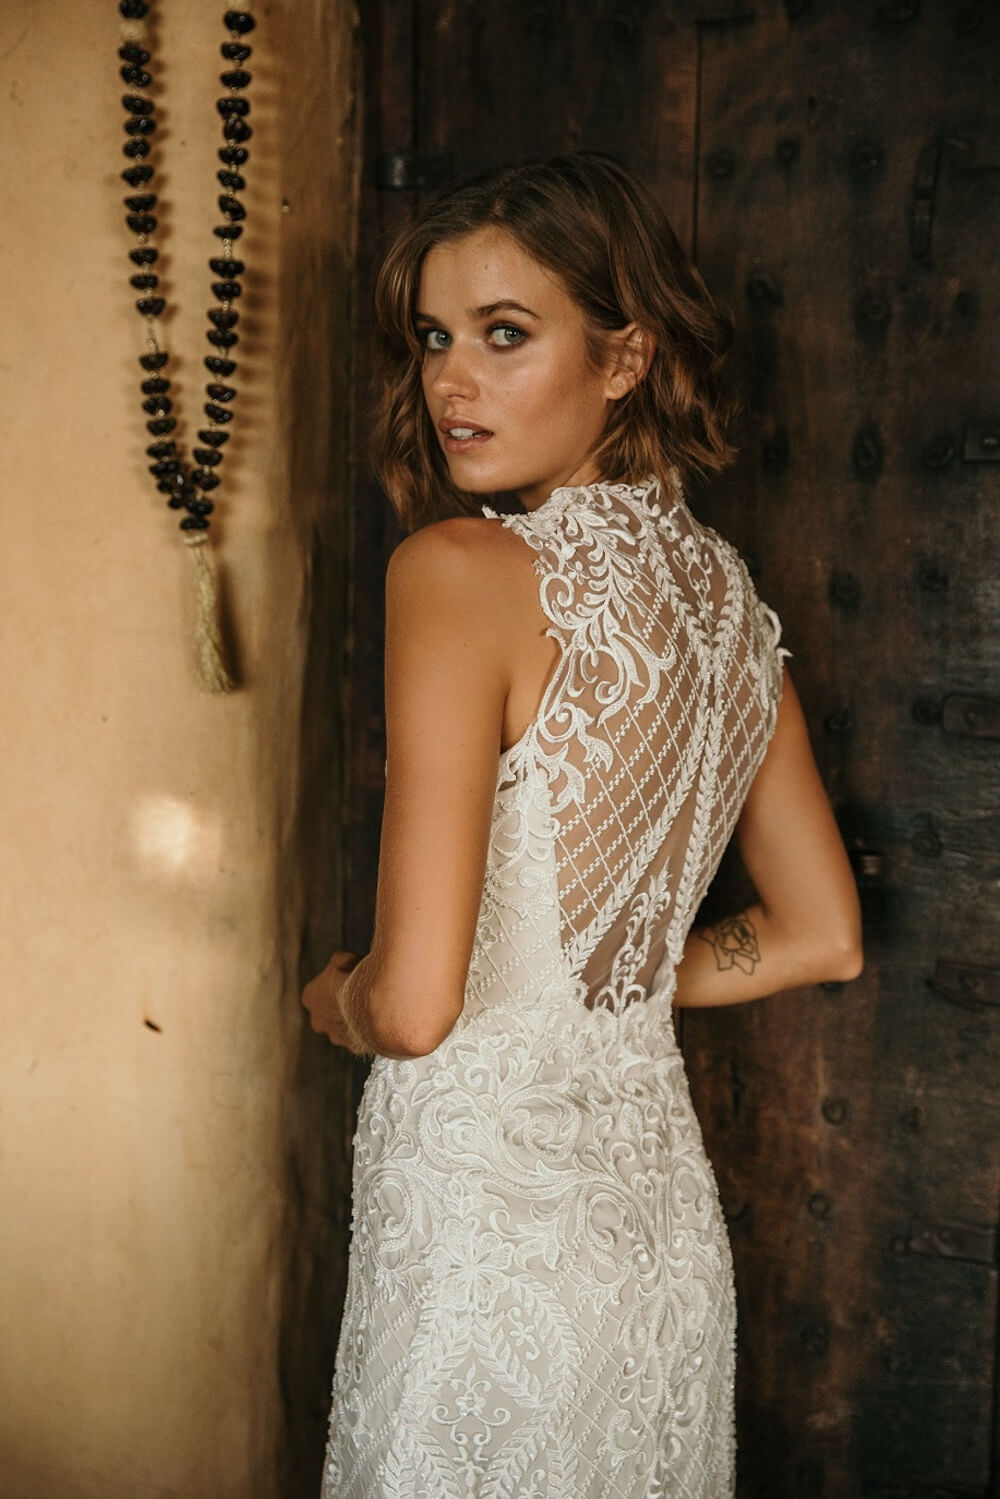 Breathless wedding dress by Jennifer Go Bridal featured on LOVE FIND CO.